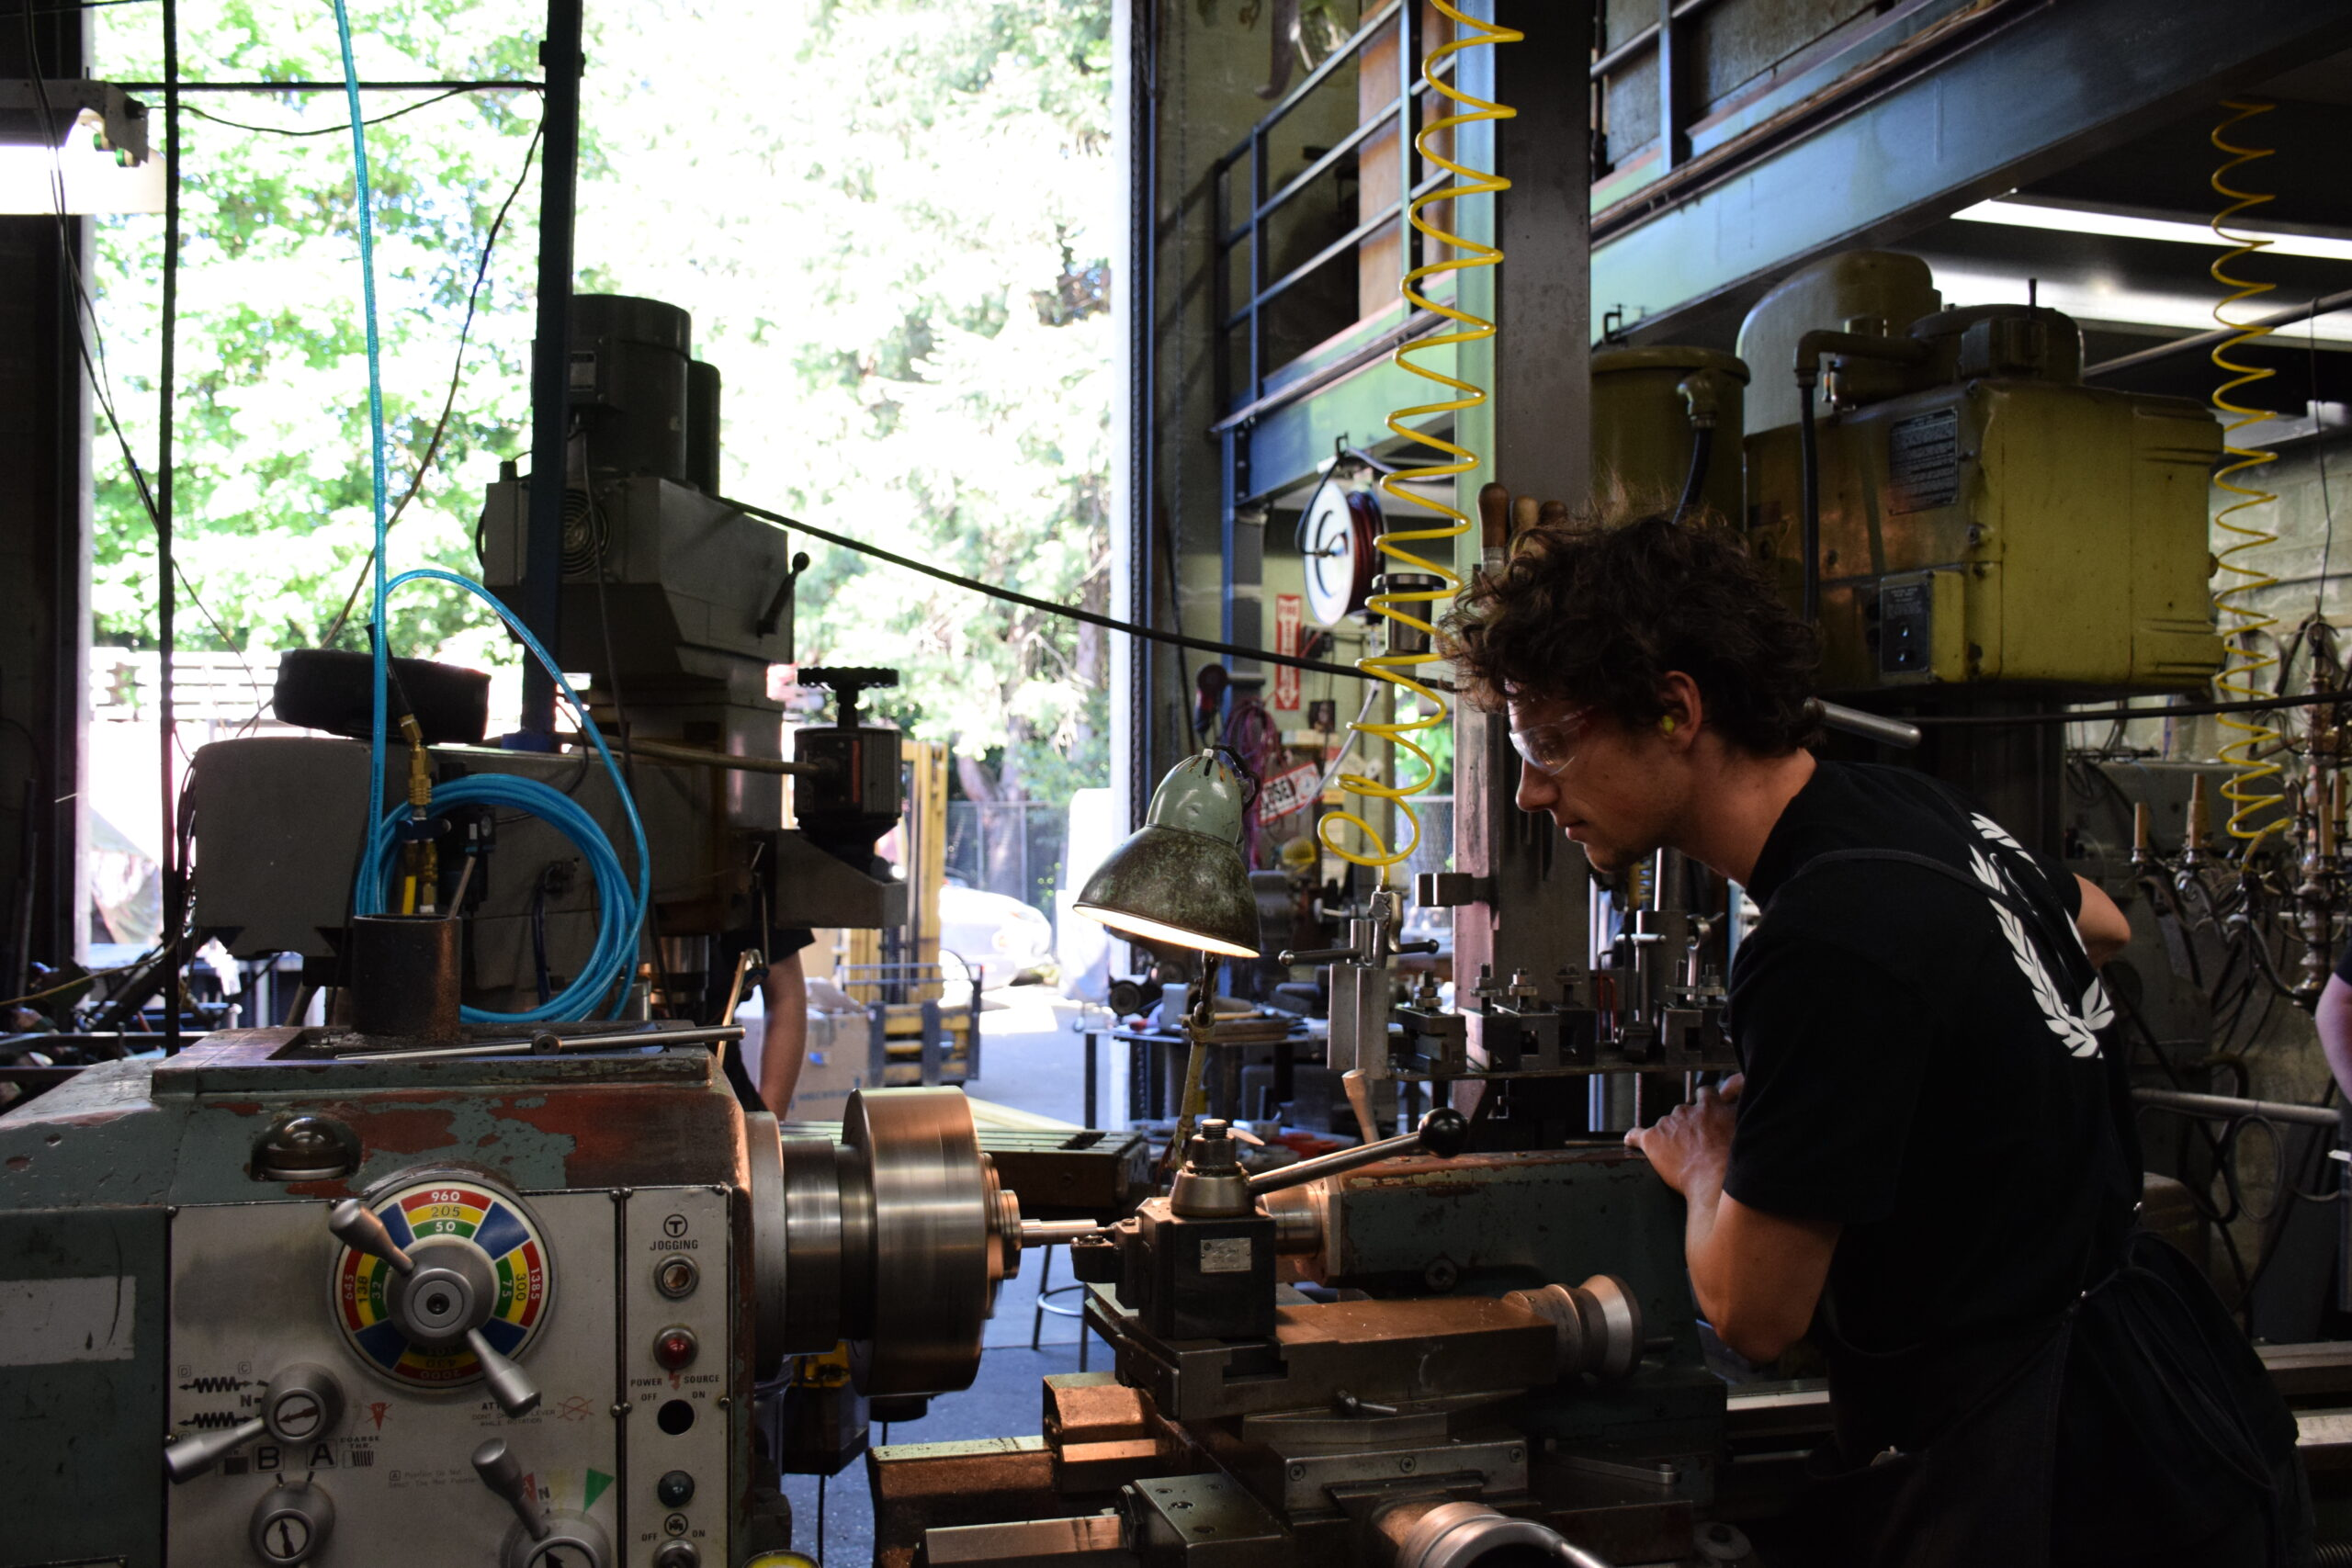 Proffesional machinist working on a lathe